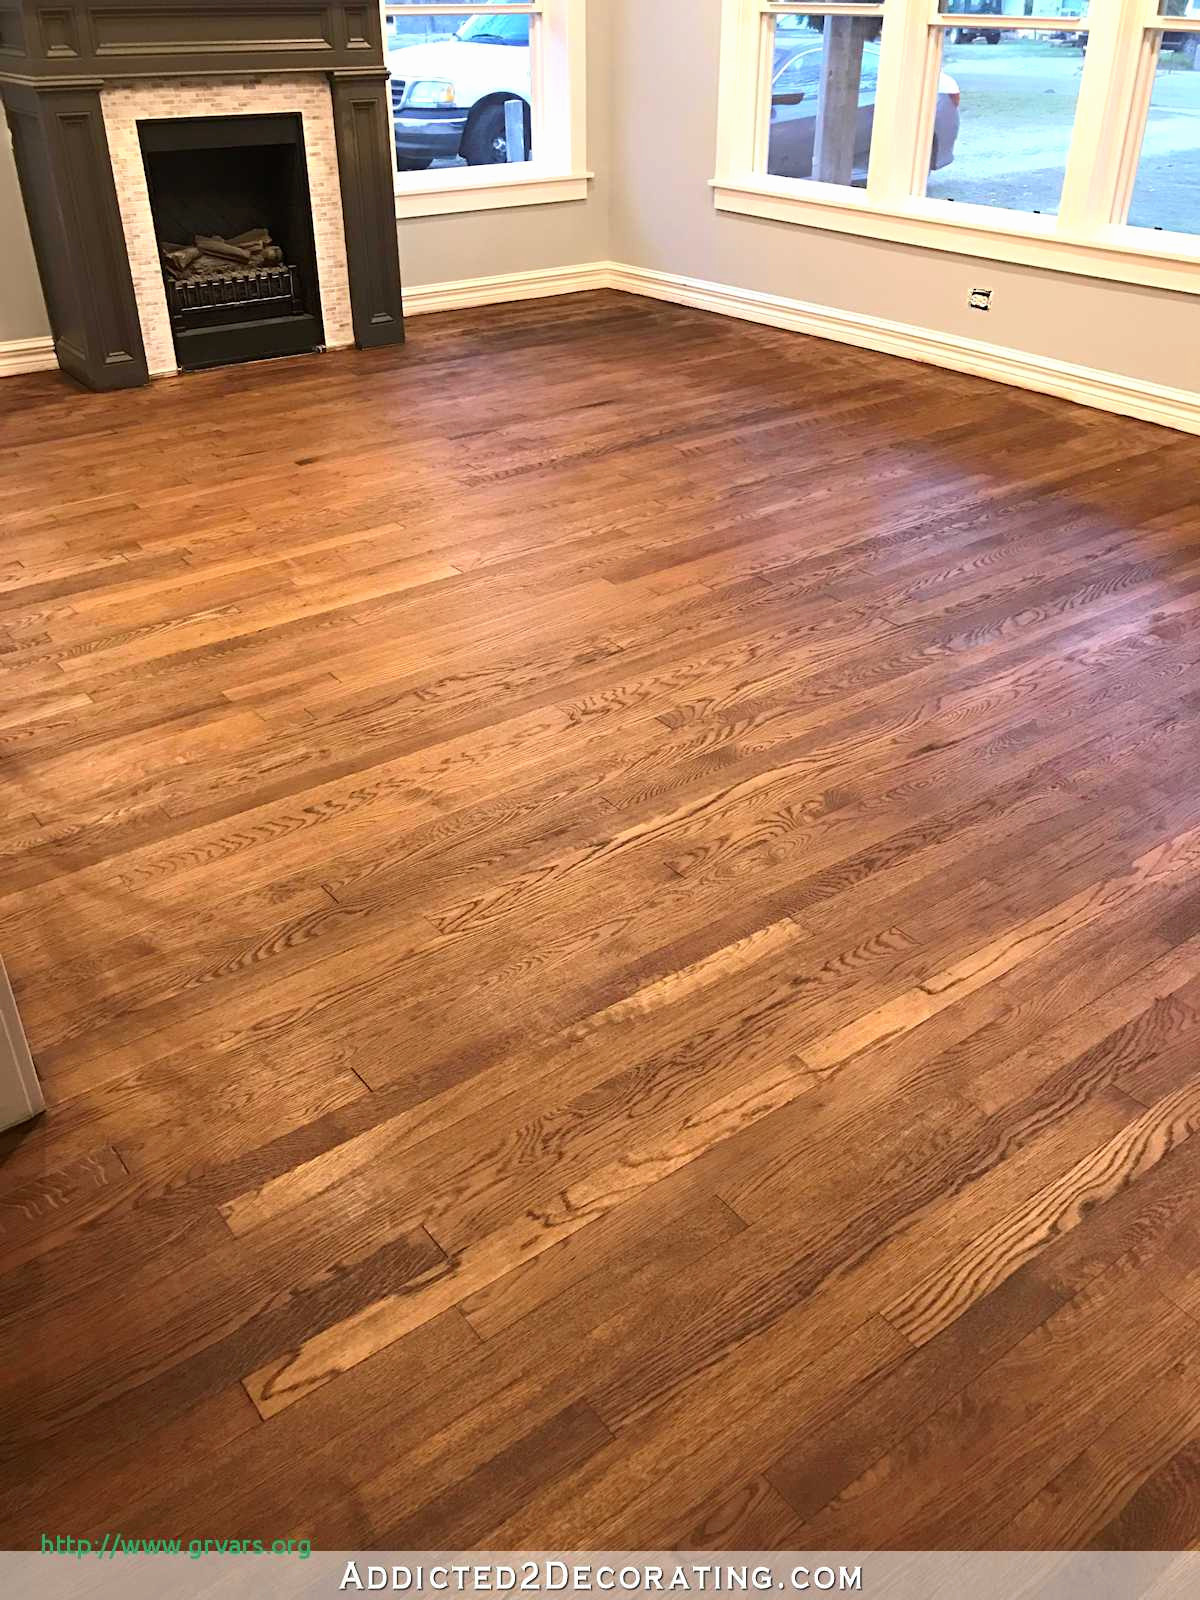 red oak hardwood flooring pictures of 60 elegant the best of stained concrete floor cost calculator throughout staining red oak hardwood floors 8a living room and entryway